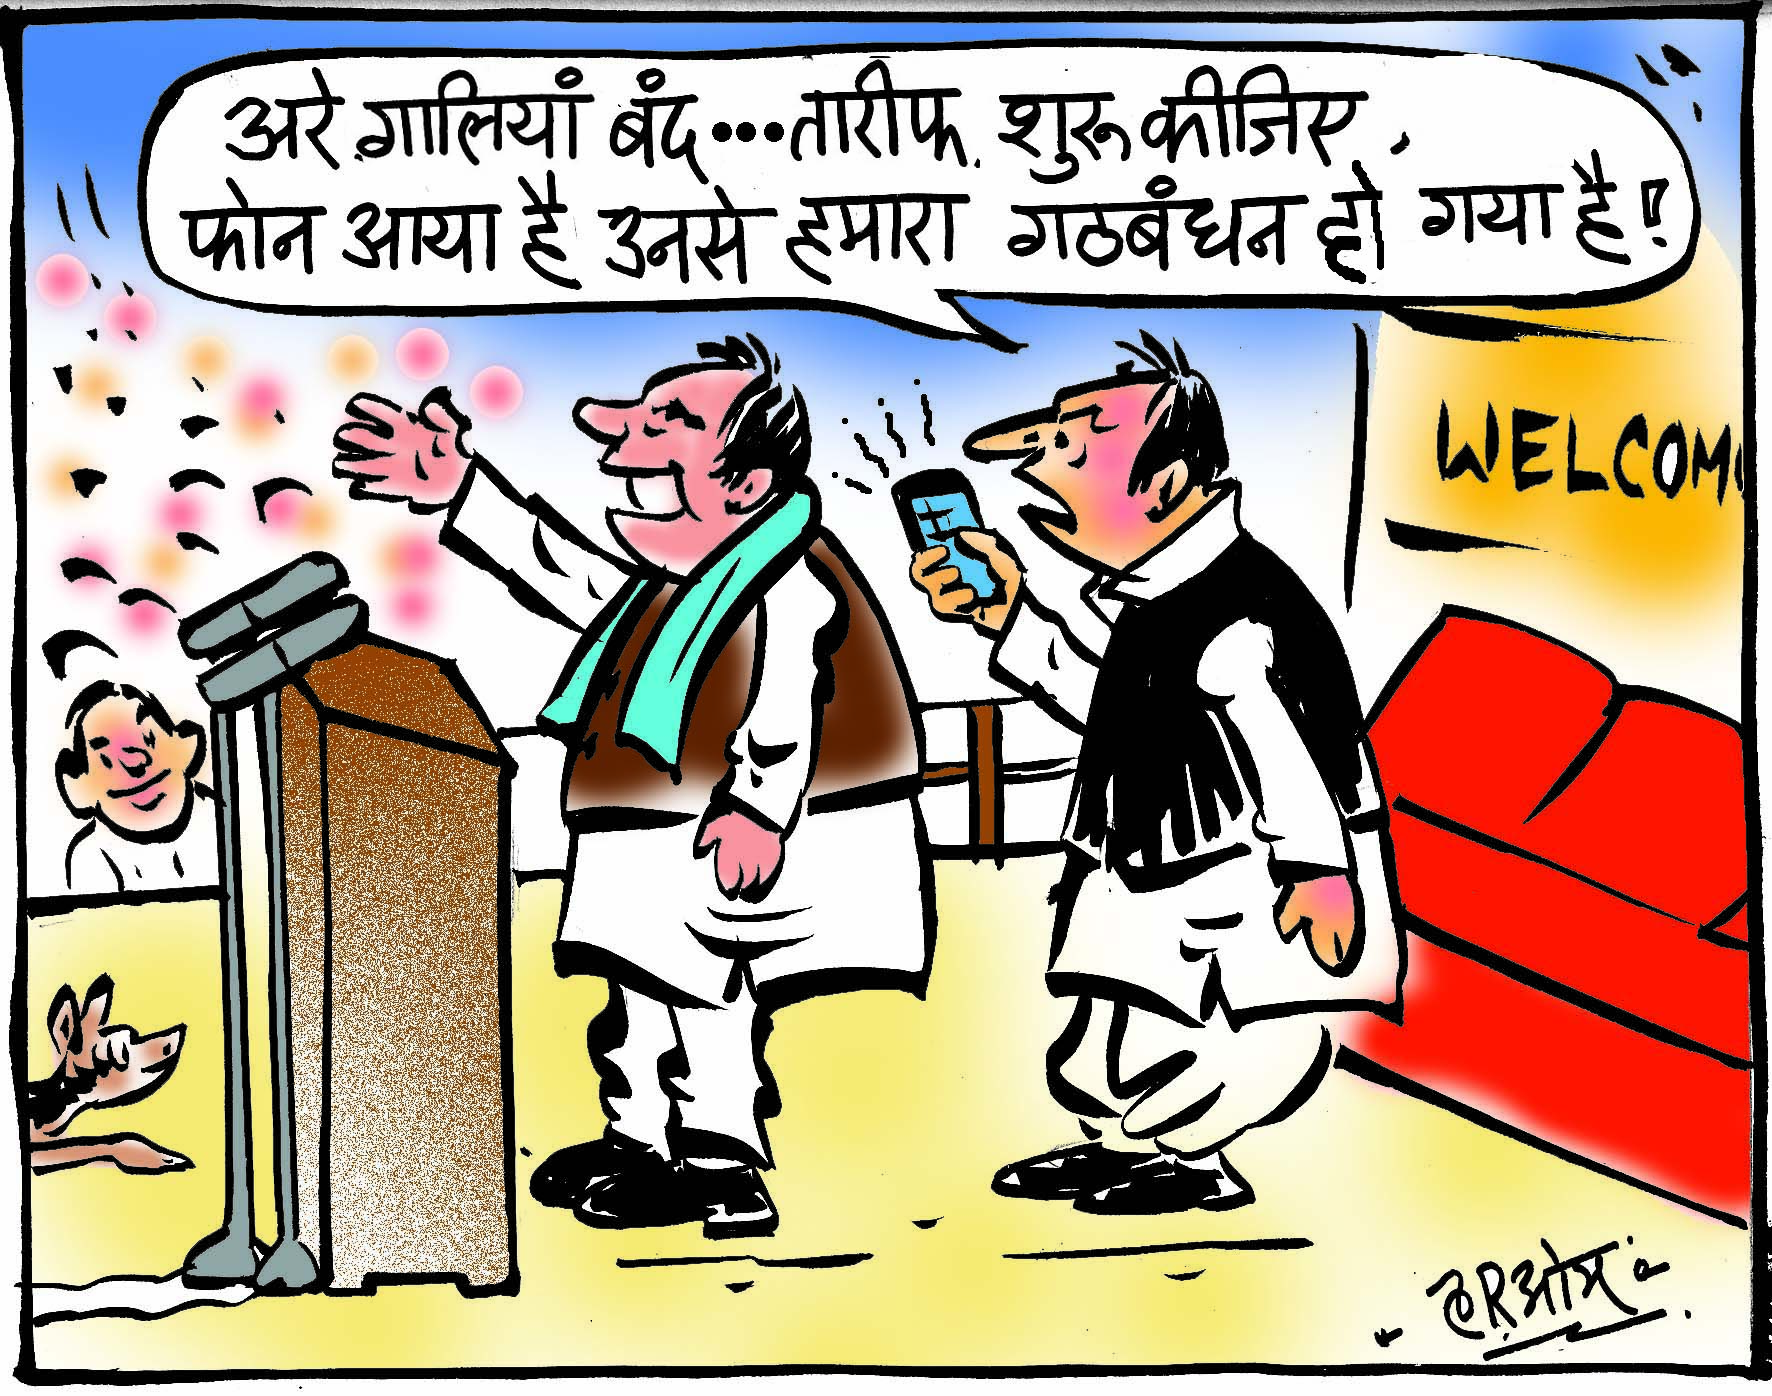 UP Assembly Election 2017: Cartoon on SP-Congress alliance